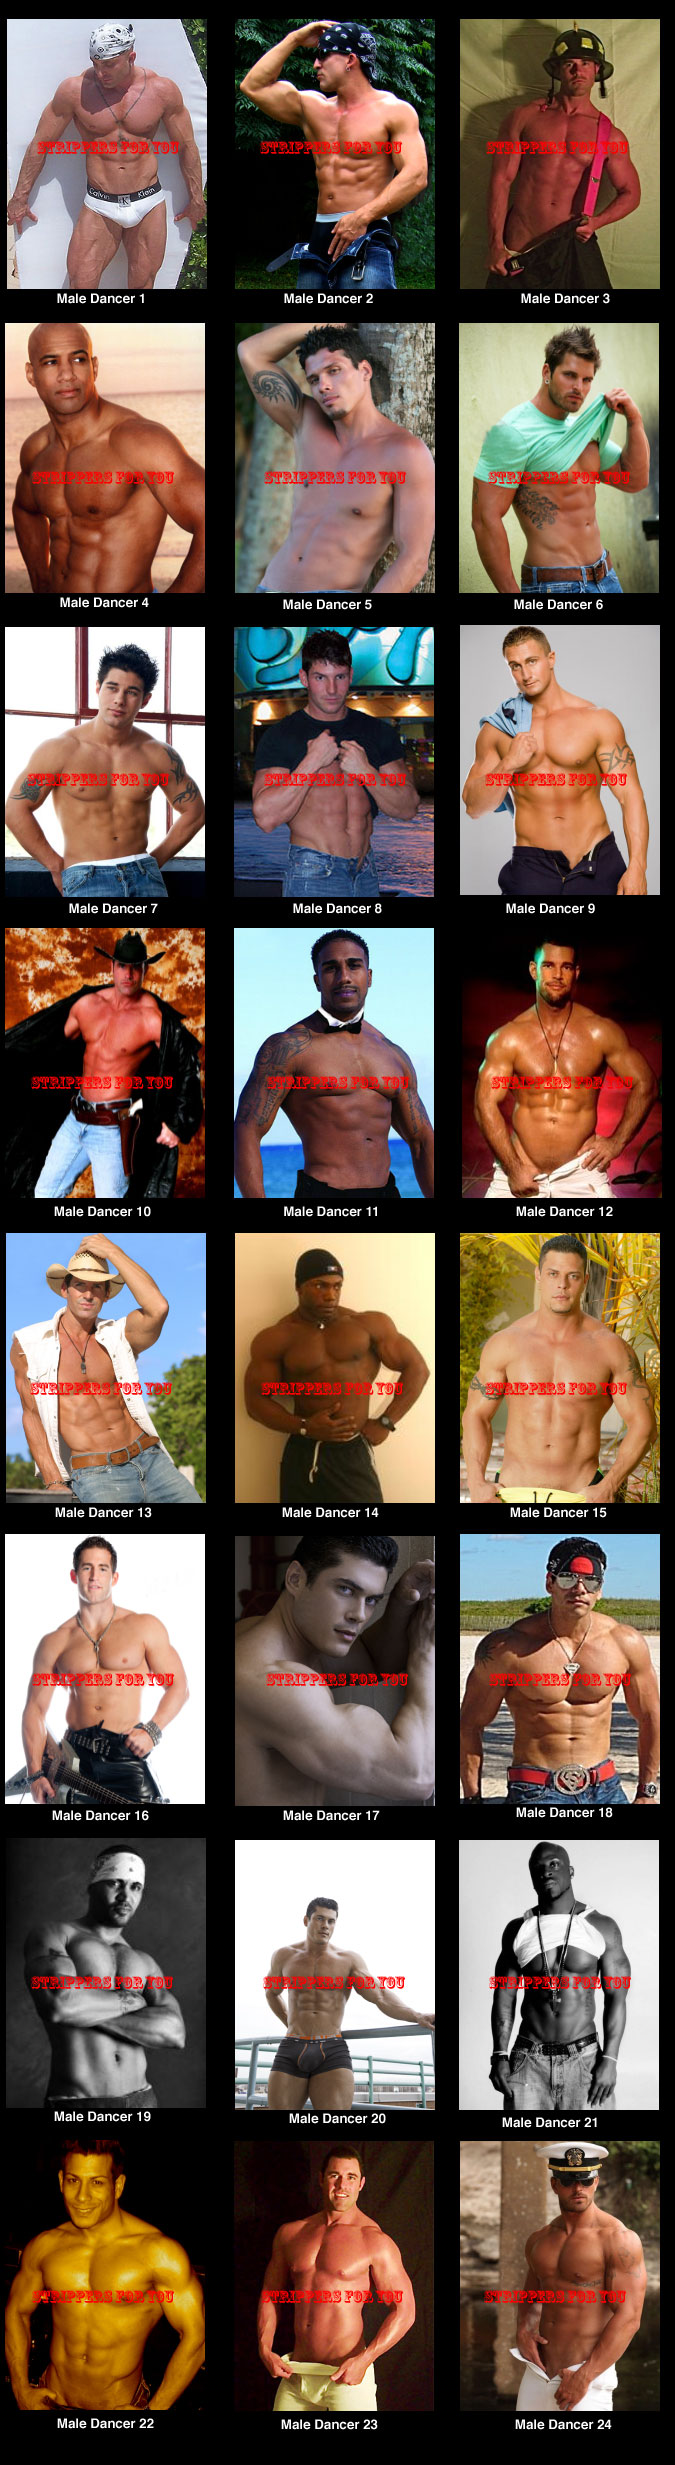 Saint Louis male strippers